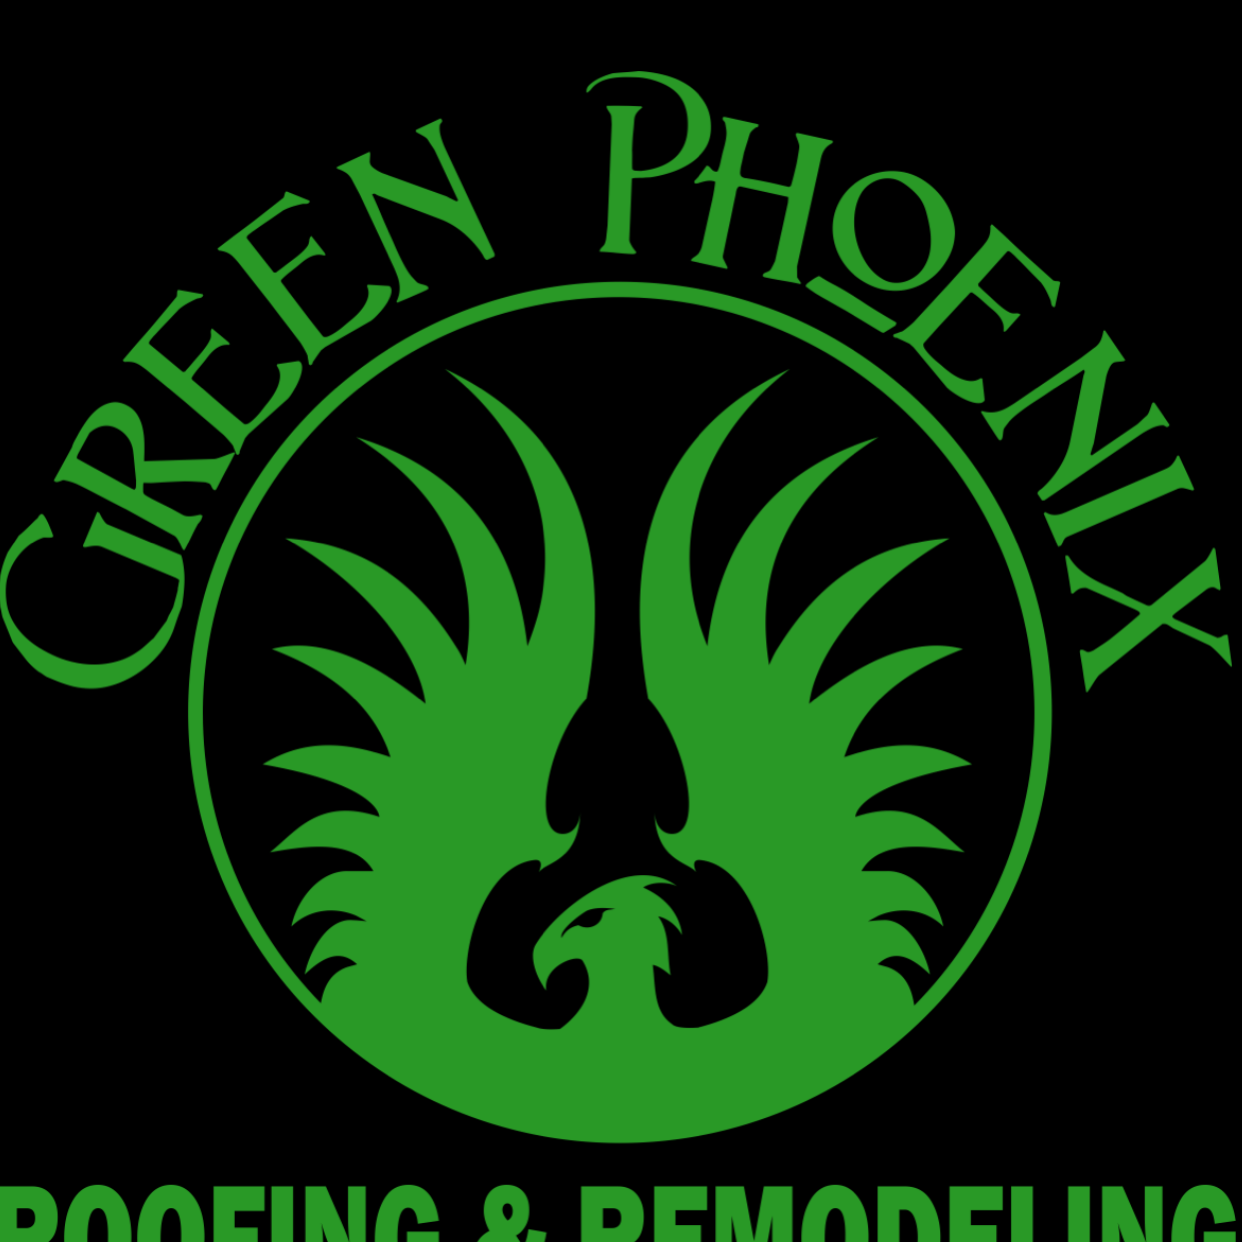 Green Phoenix Roofing & Remodeling logo